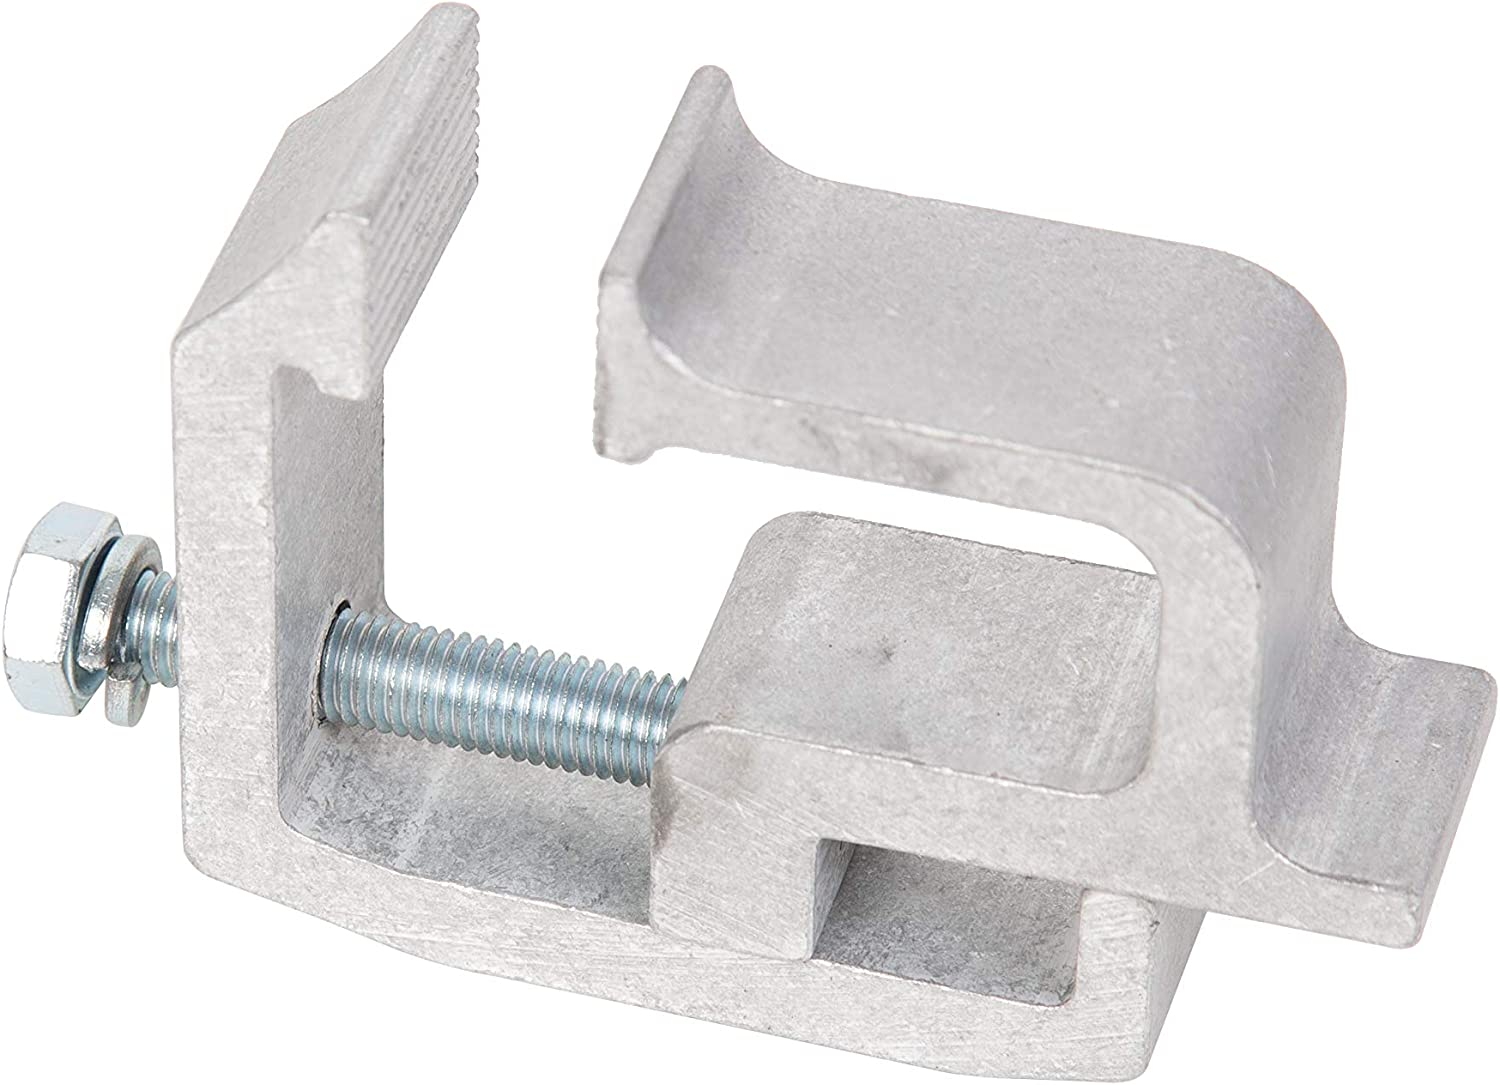 KUAFU 4 Pcs Truck Clamps for Mounting Caps Camper Shell Topper Canopy Heavy Duty Aluminum